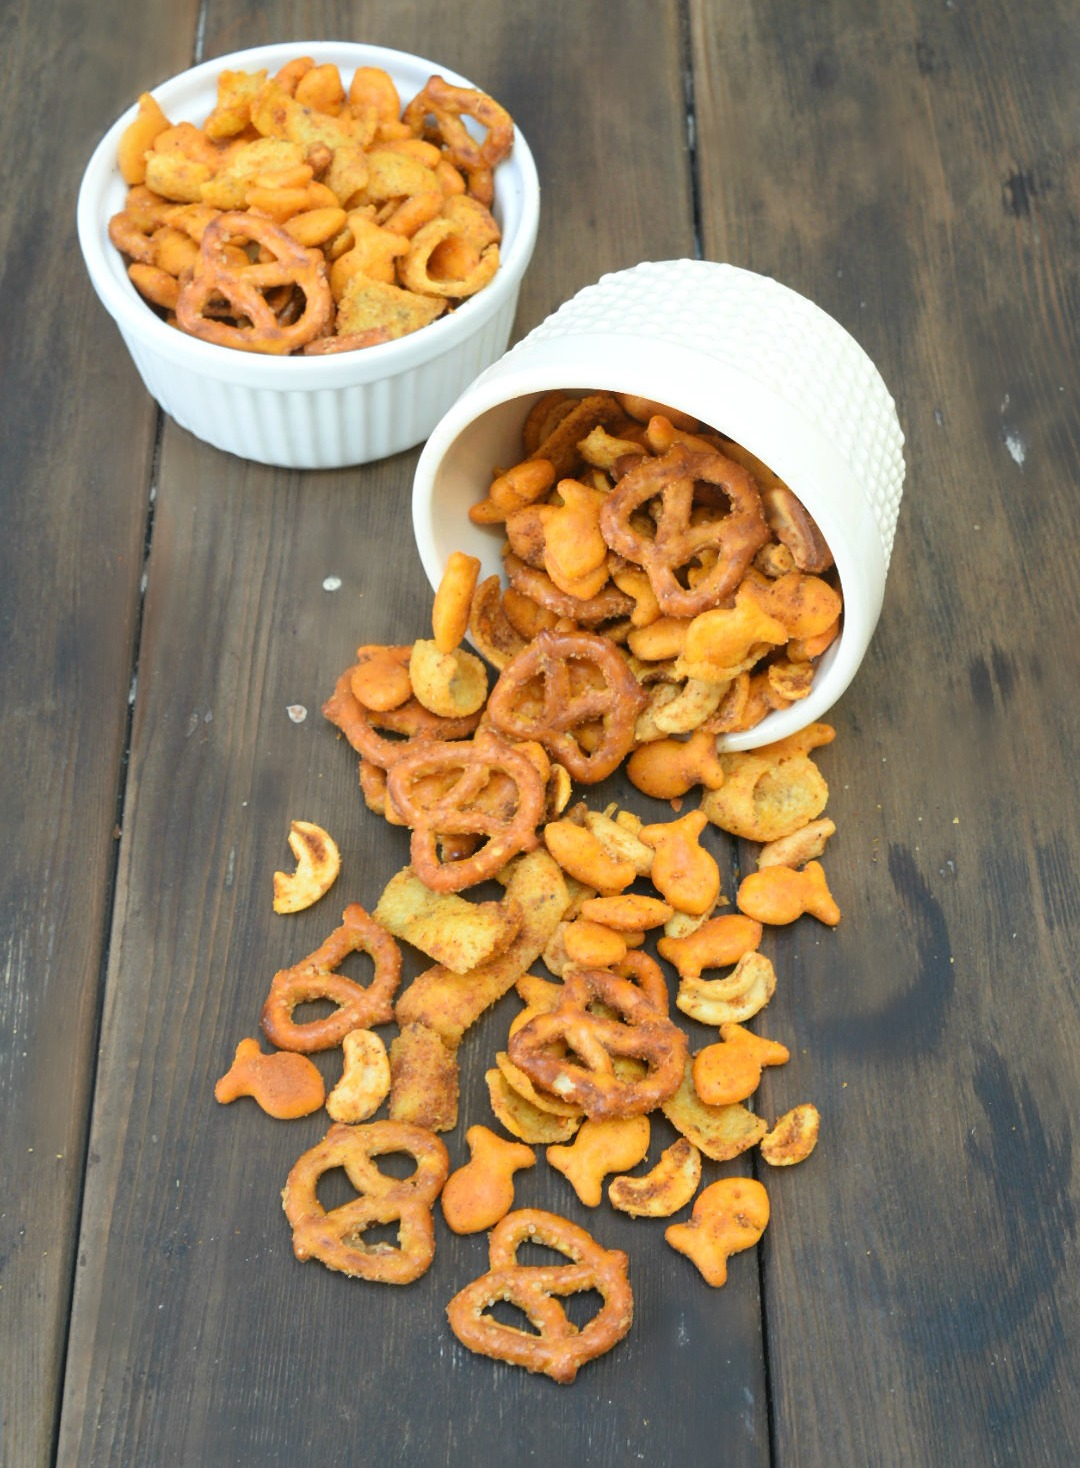 Come on over for a handful of this great goldfish snack mix